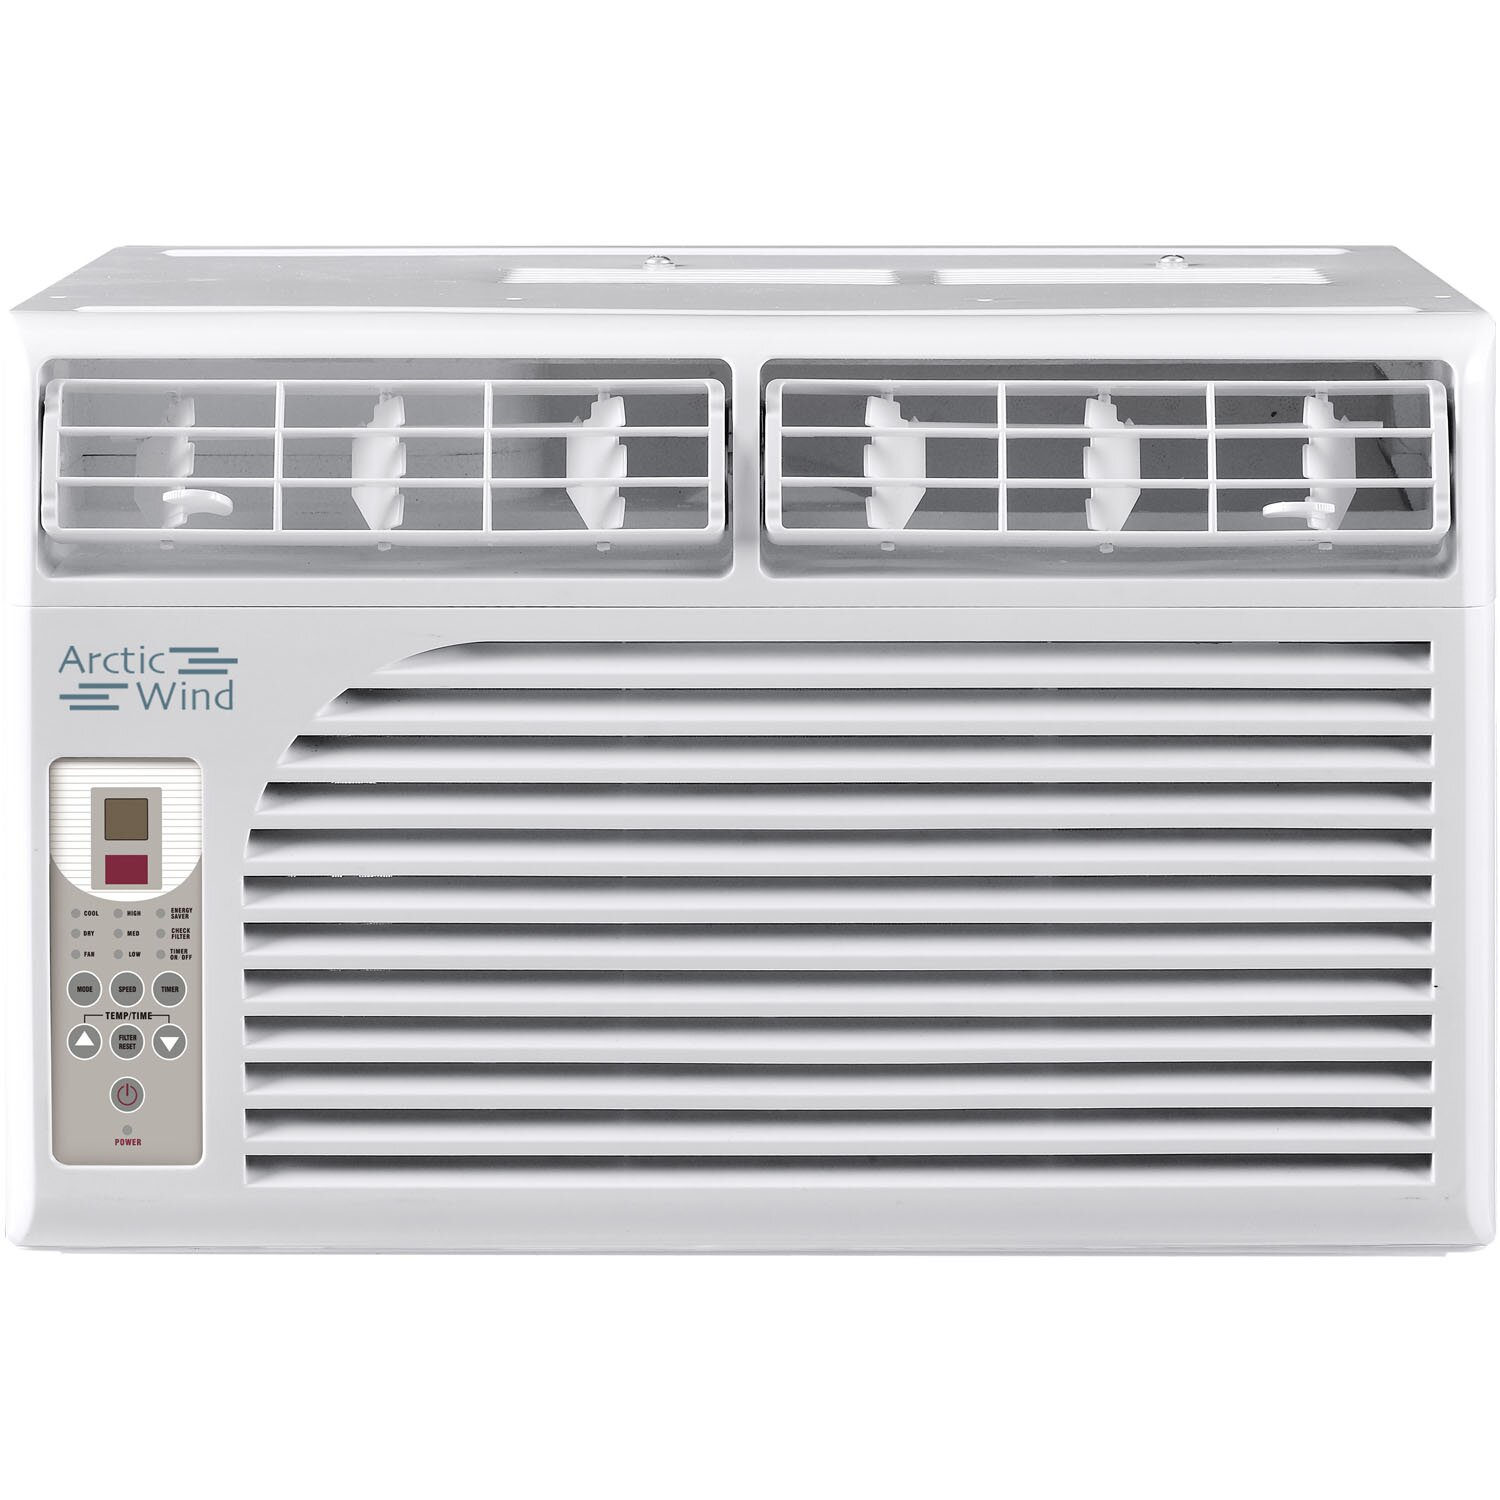 BTU Energy Star Window Air Conditioner with Remote & Reviews Wayfair #6B5D4B